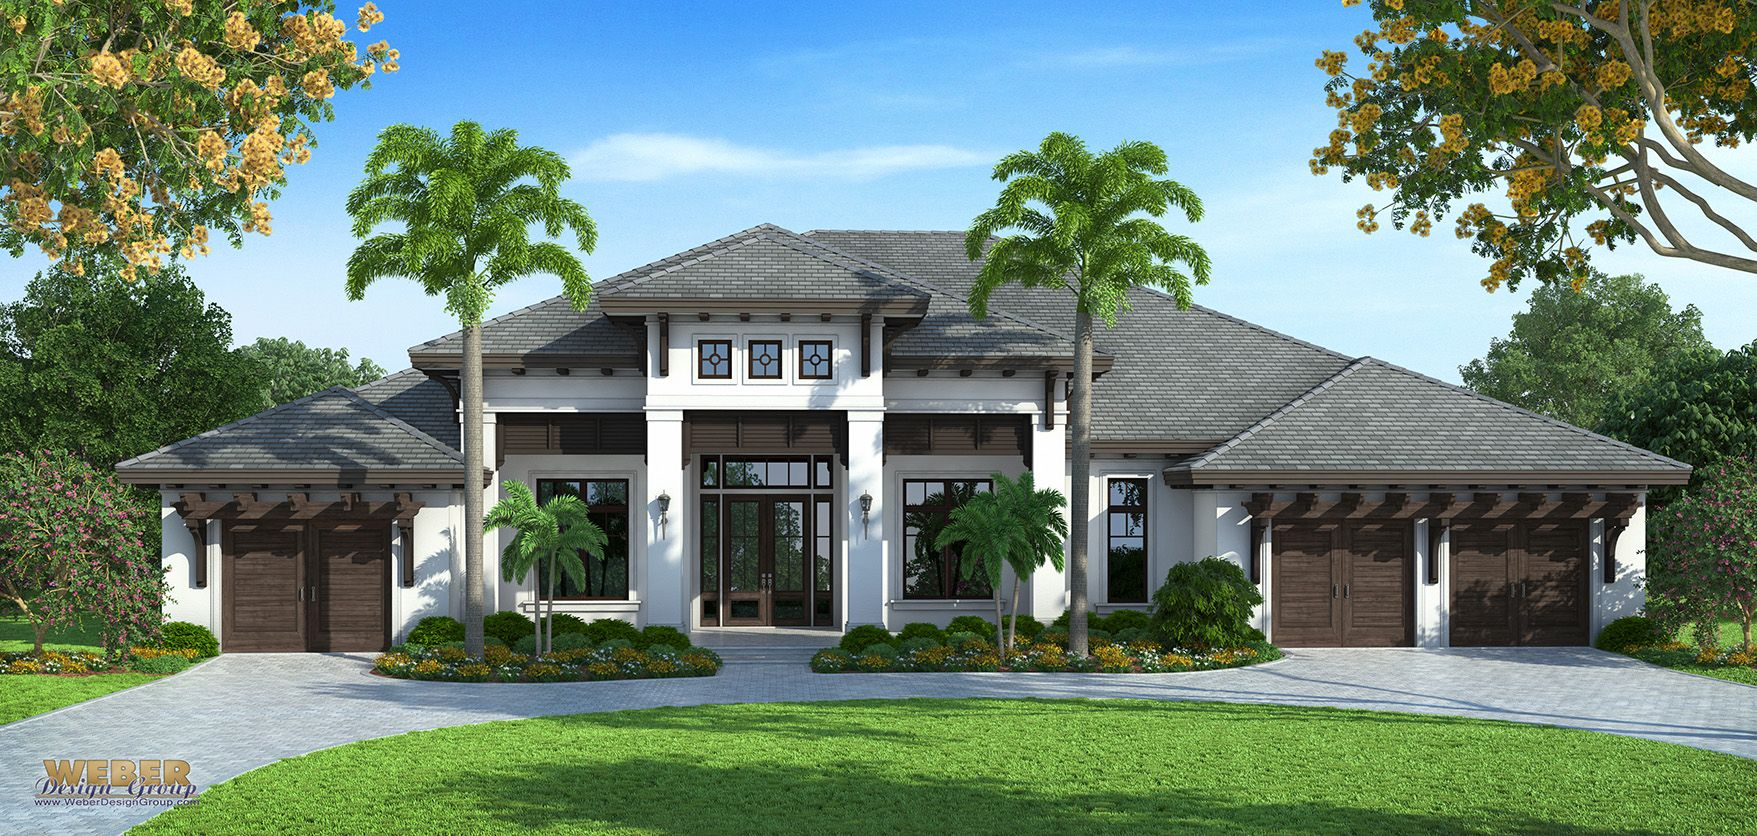 Transitional west indies style house plans by weber design for Group house plans